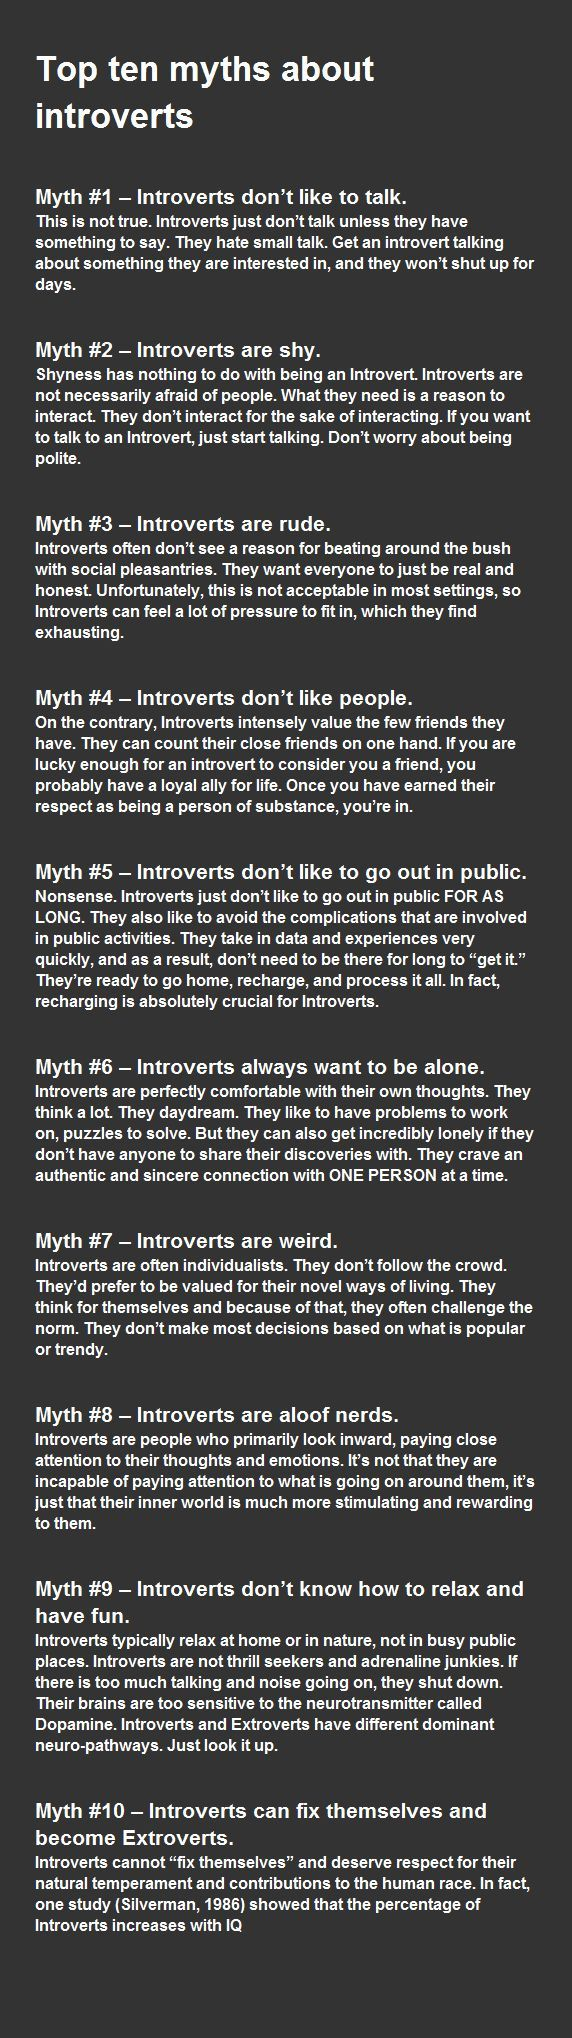 "All true, being introverted isn't bad. It's just how people view them that's bad. It can be annoying when people don't see them for who they are. They give up and say,""ahh they're too quiet so sooo ill just leave."""